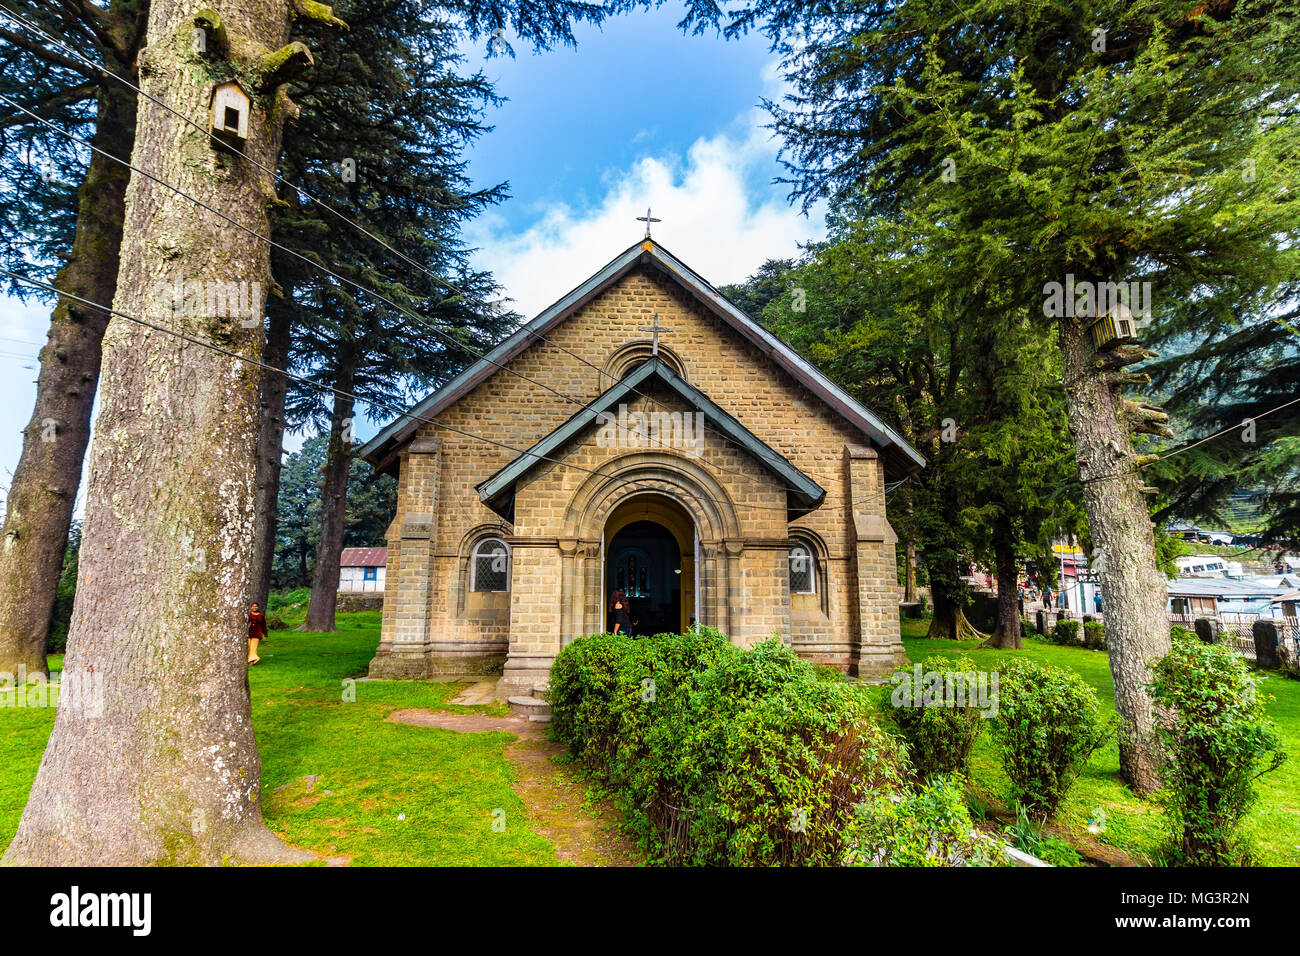 St. John's Church in Dalhousie, Himachal Pradesh, India, Asia. - Stock Image